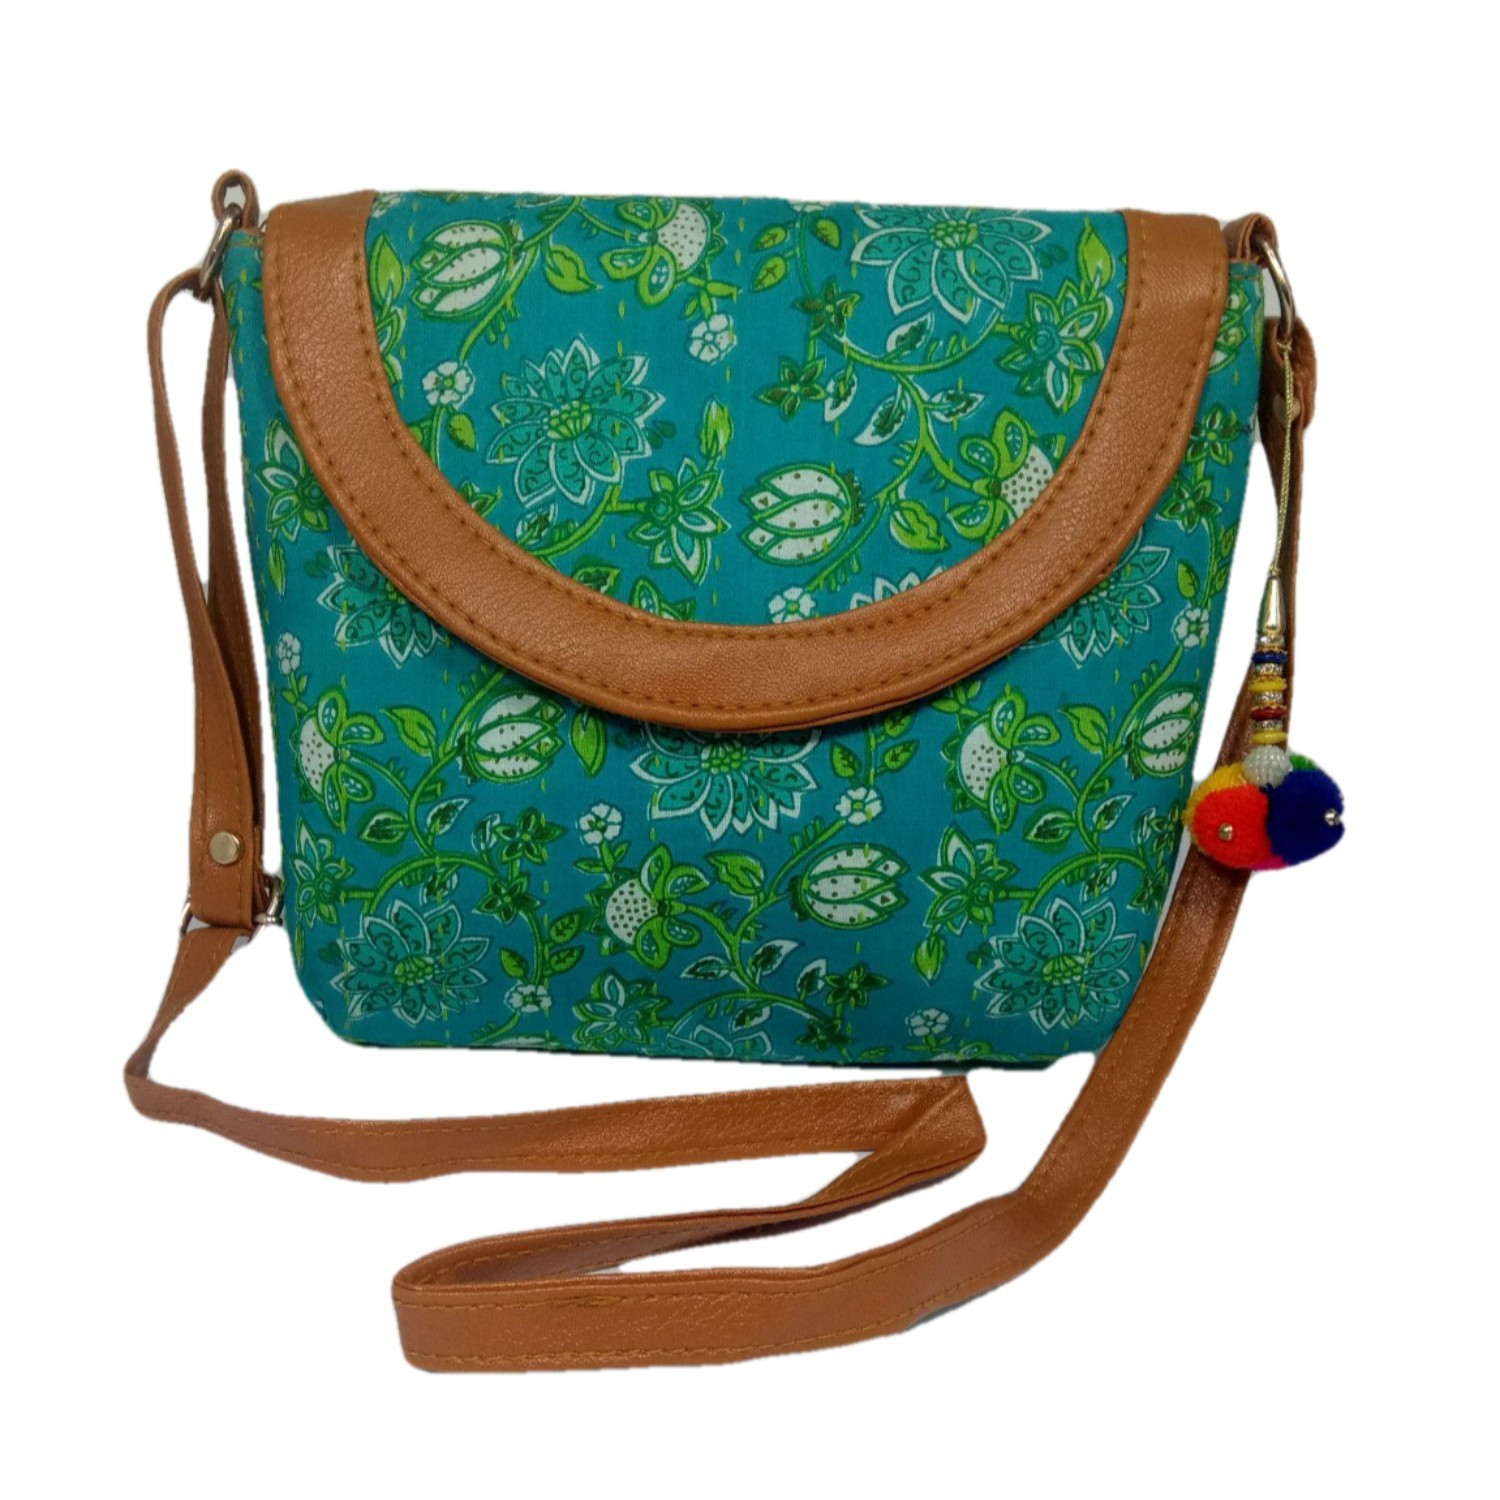 Handmade Excellent See Green Genuine Clutch or Shoulder Bag by Women Self Help Groups of Rajasthan